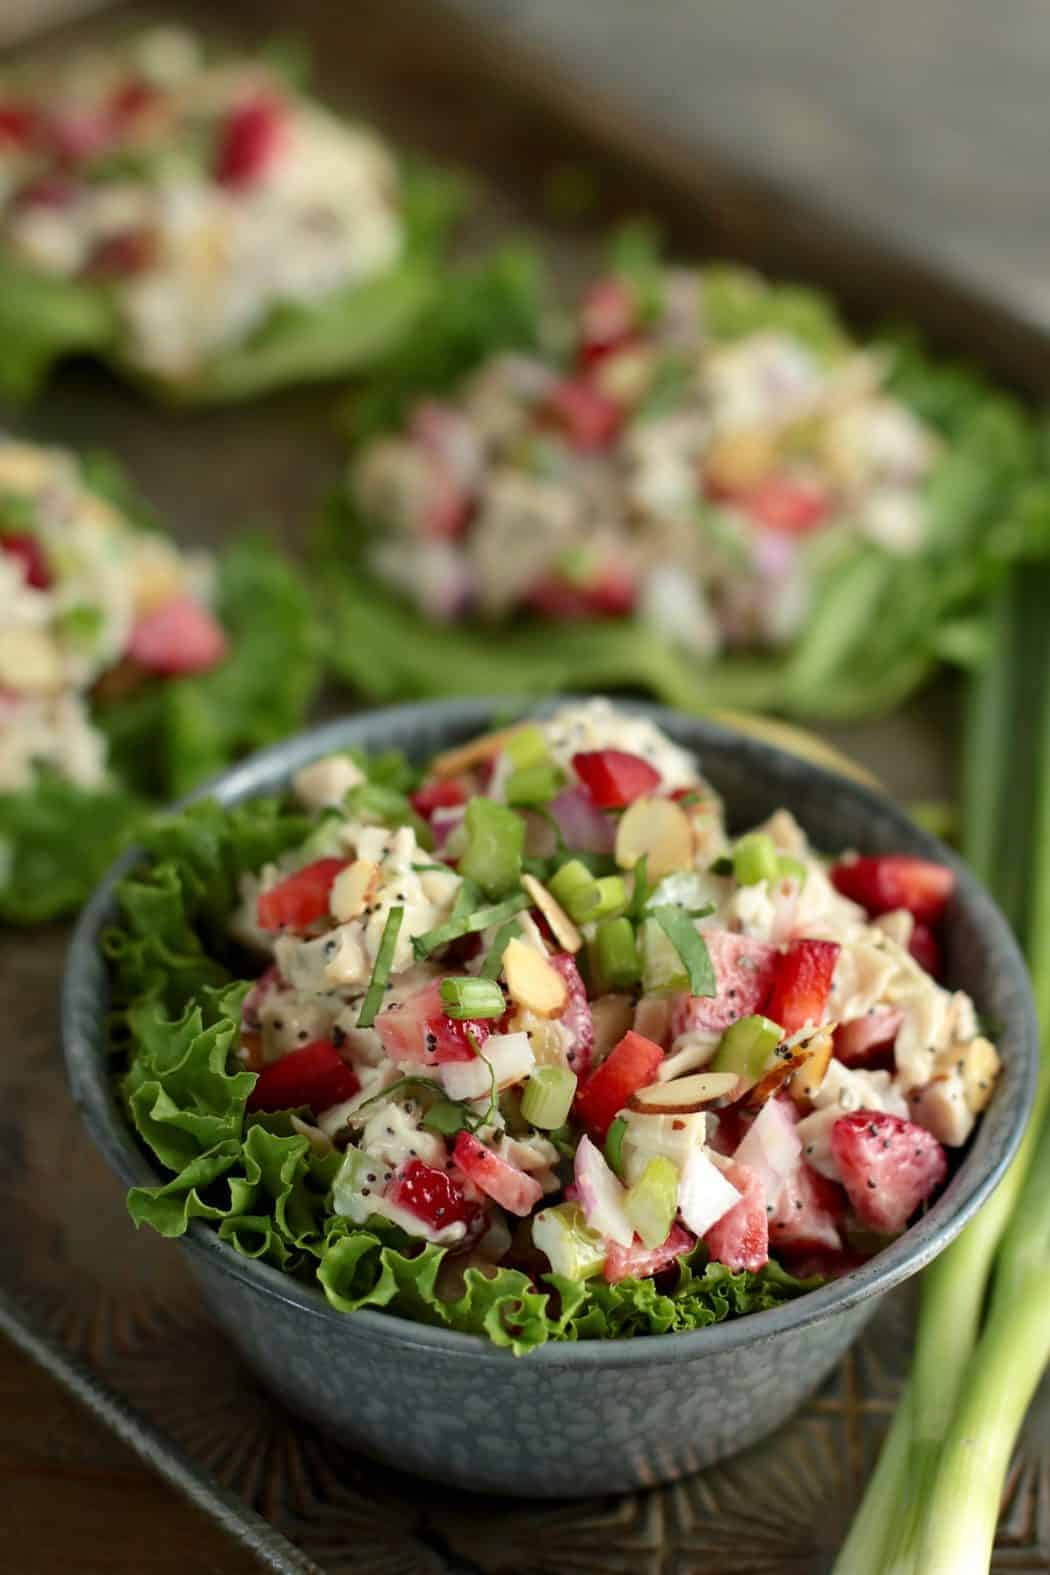 Strawberry Chicken Poppy Seed Salad in a gray bowl